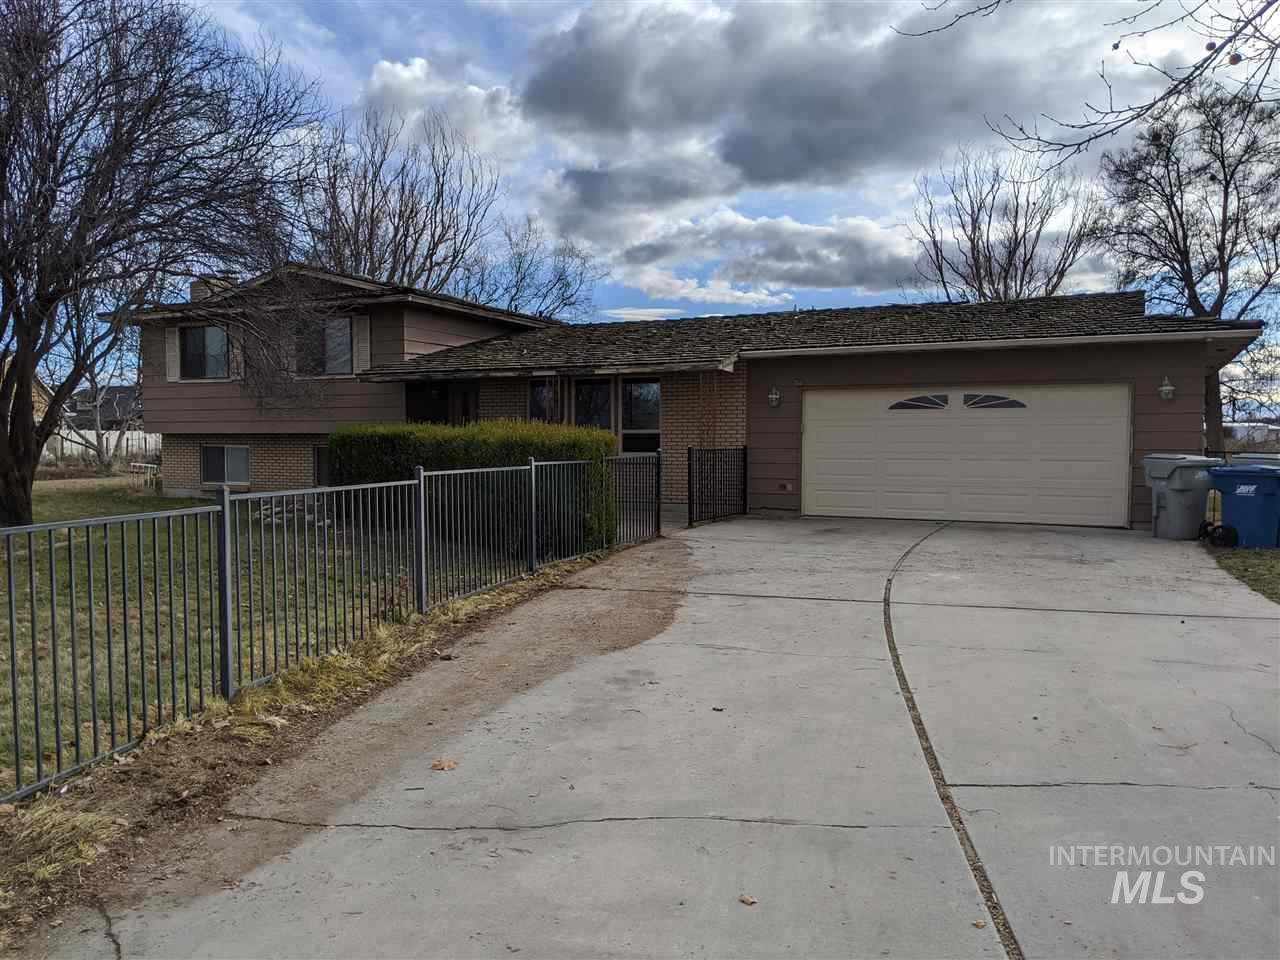 105 Rosalyn, Meridian, Idaho 83642, 4 Bedrooms, 2.5 Bathrooms, Rental For Rent, Price $1,850, 98756704